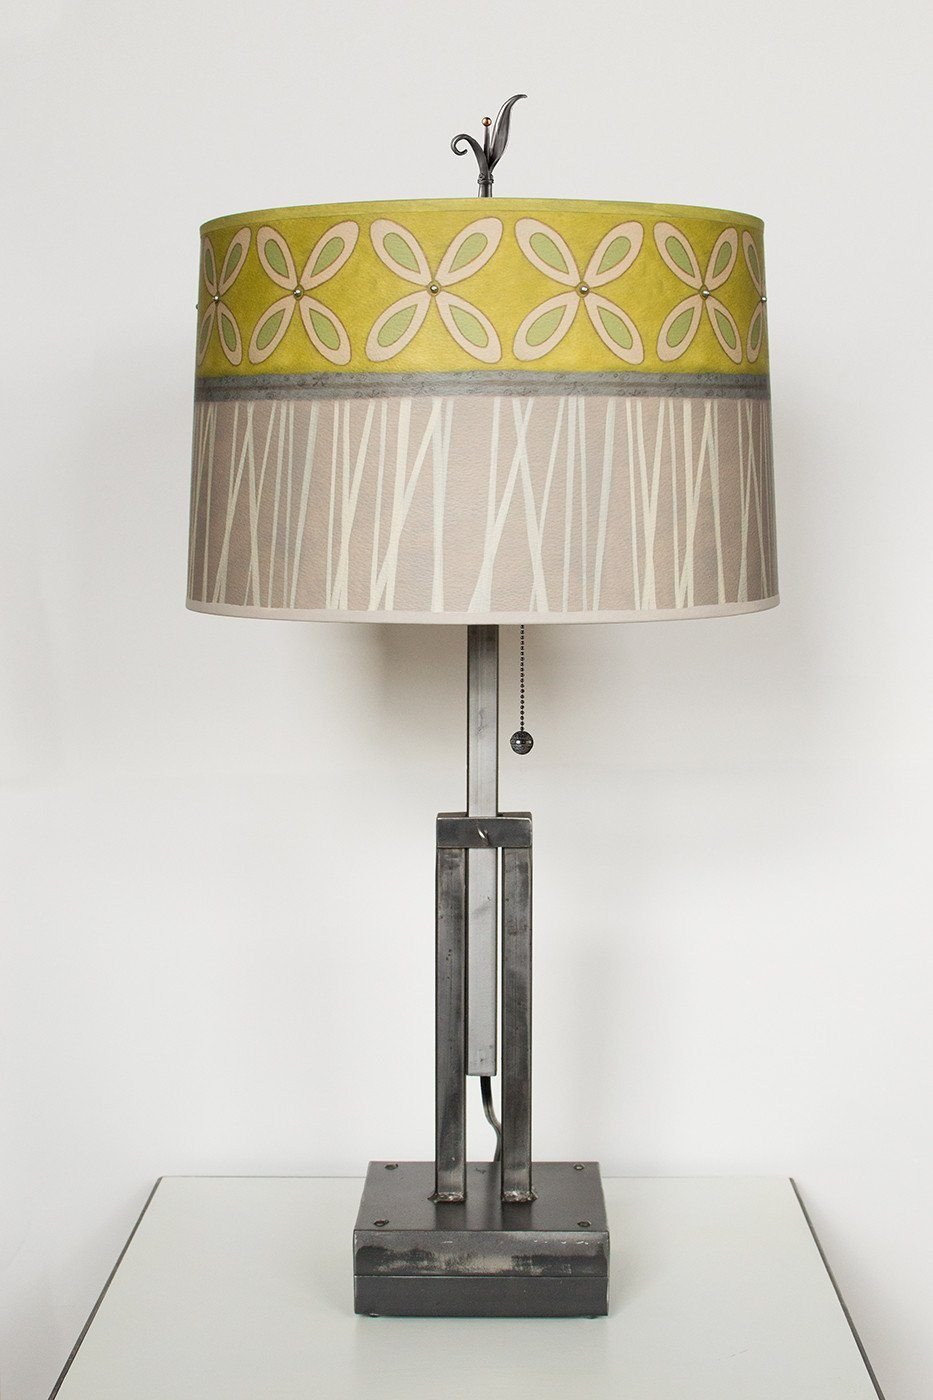 Adjustable-Height Steel Table Lamp with Large Drum Shade in Kiwi